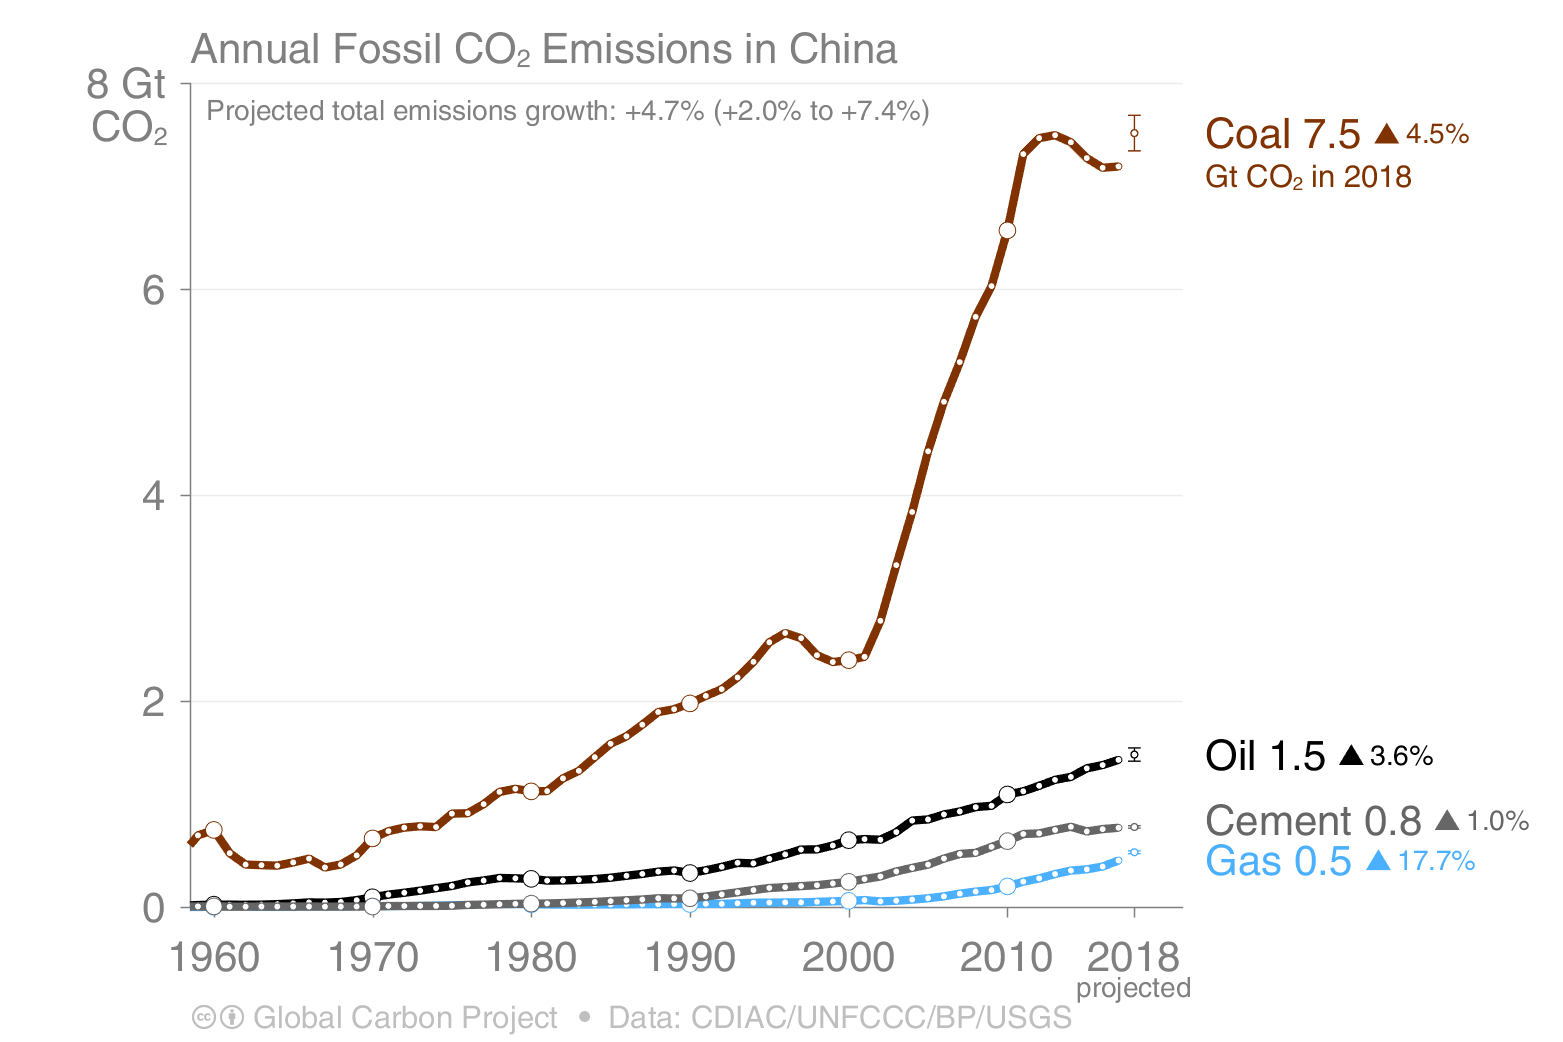 Annual fossil CO2 emissions in China 1960-2018 for coal, oil, gas and cement